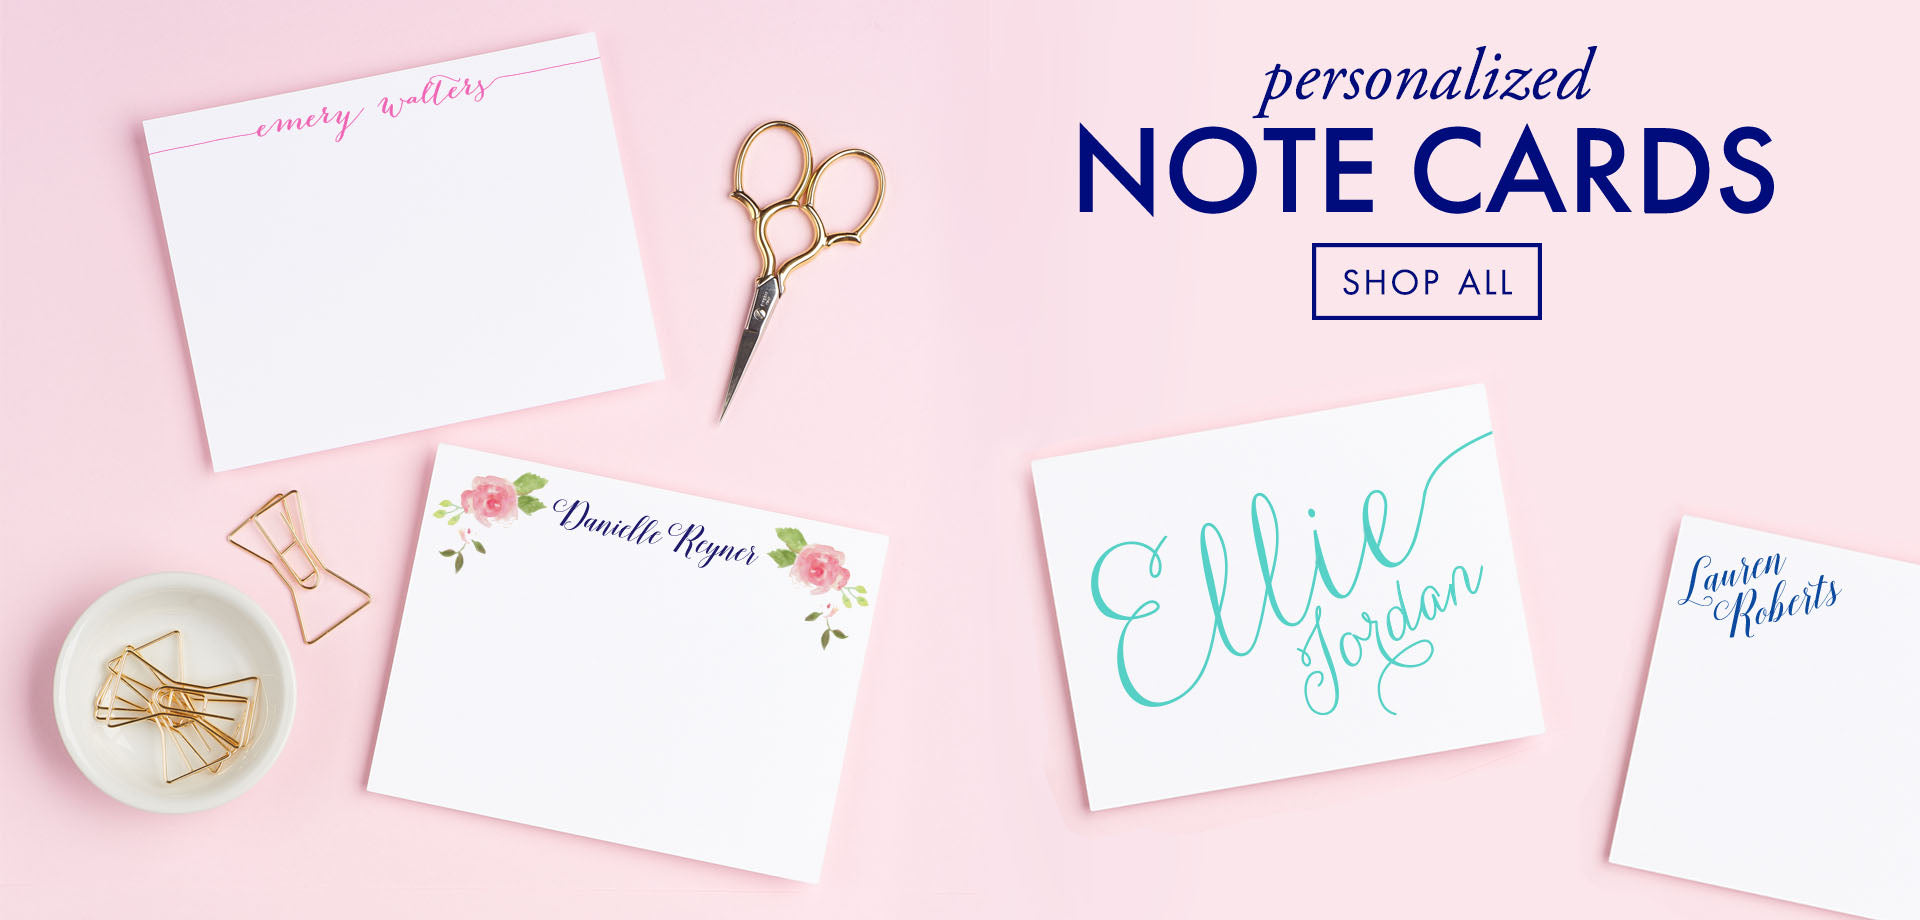 Personalized Note Cards, Shop all styles on Modern Pink Paper